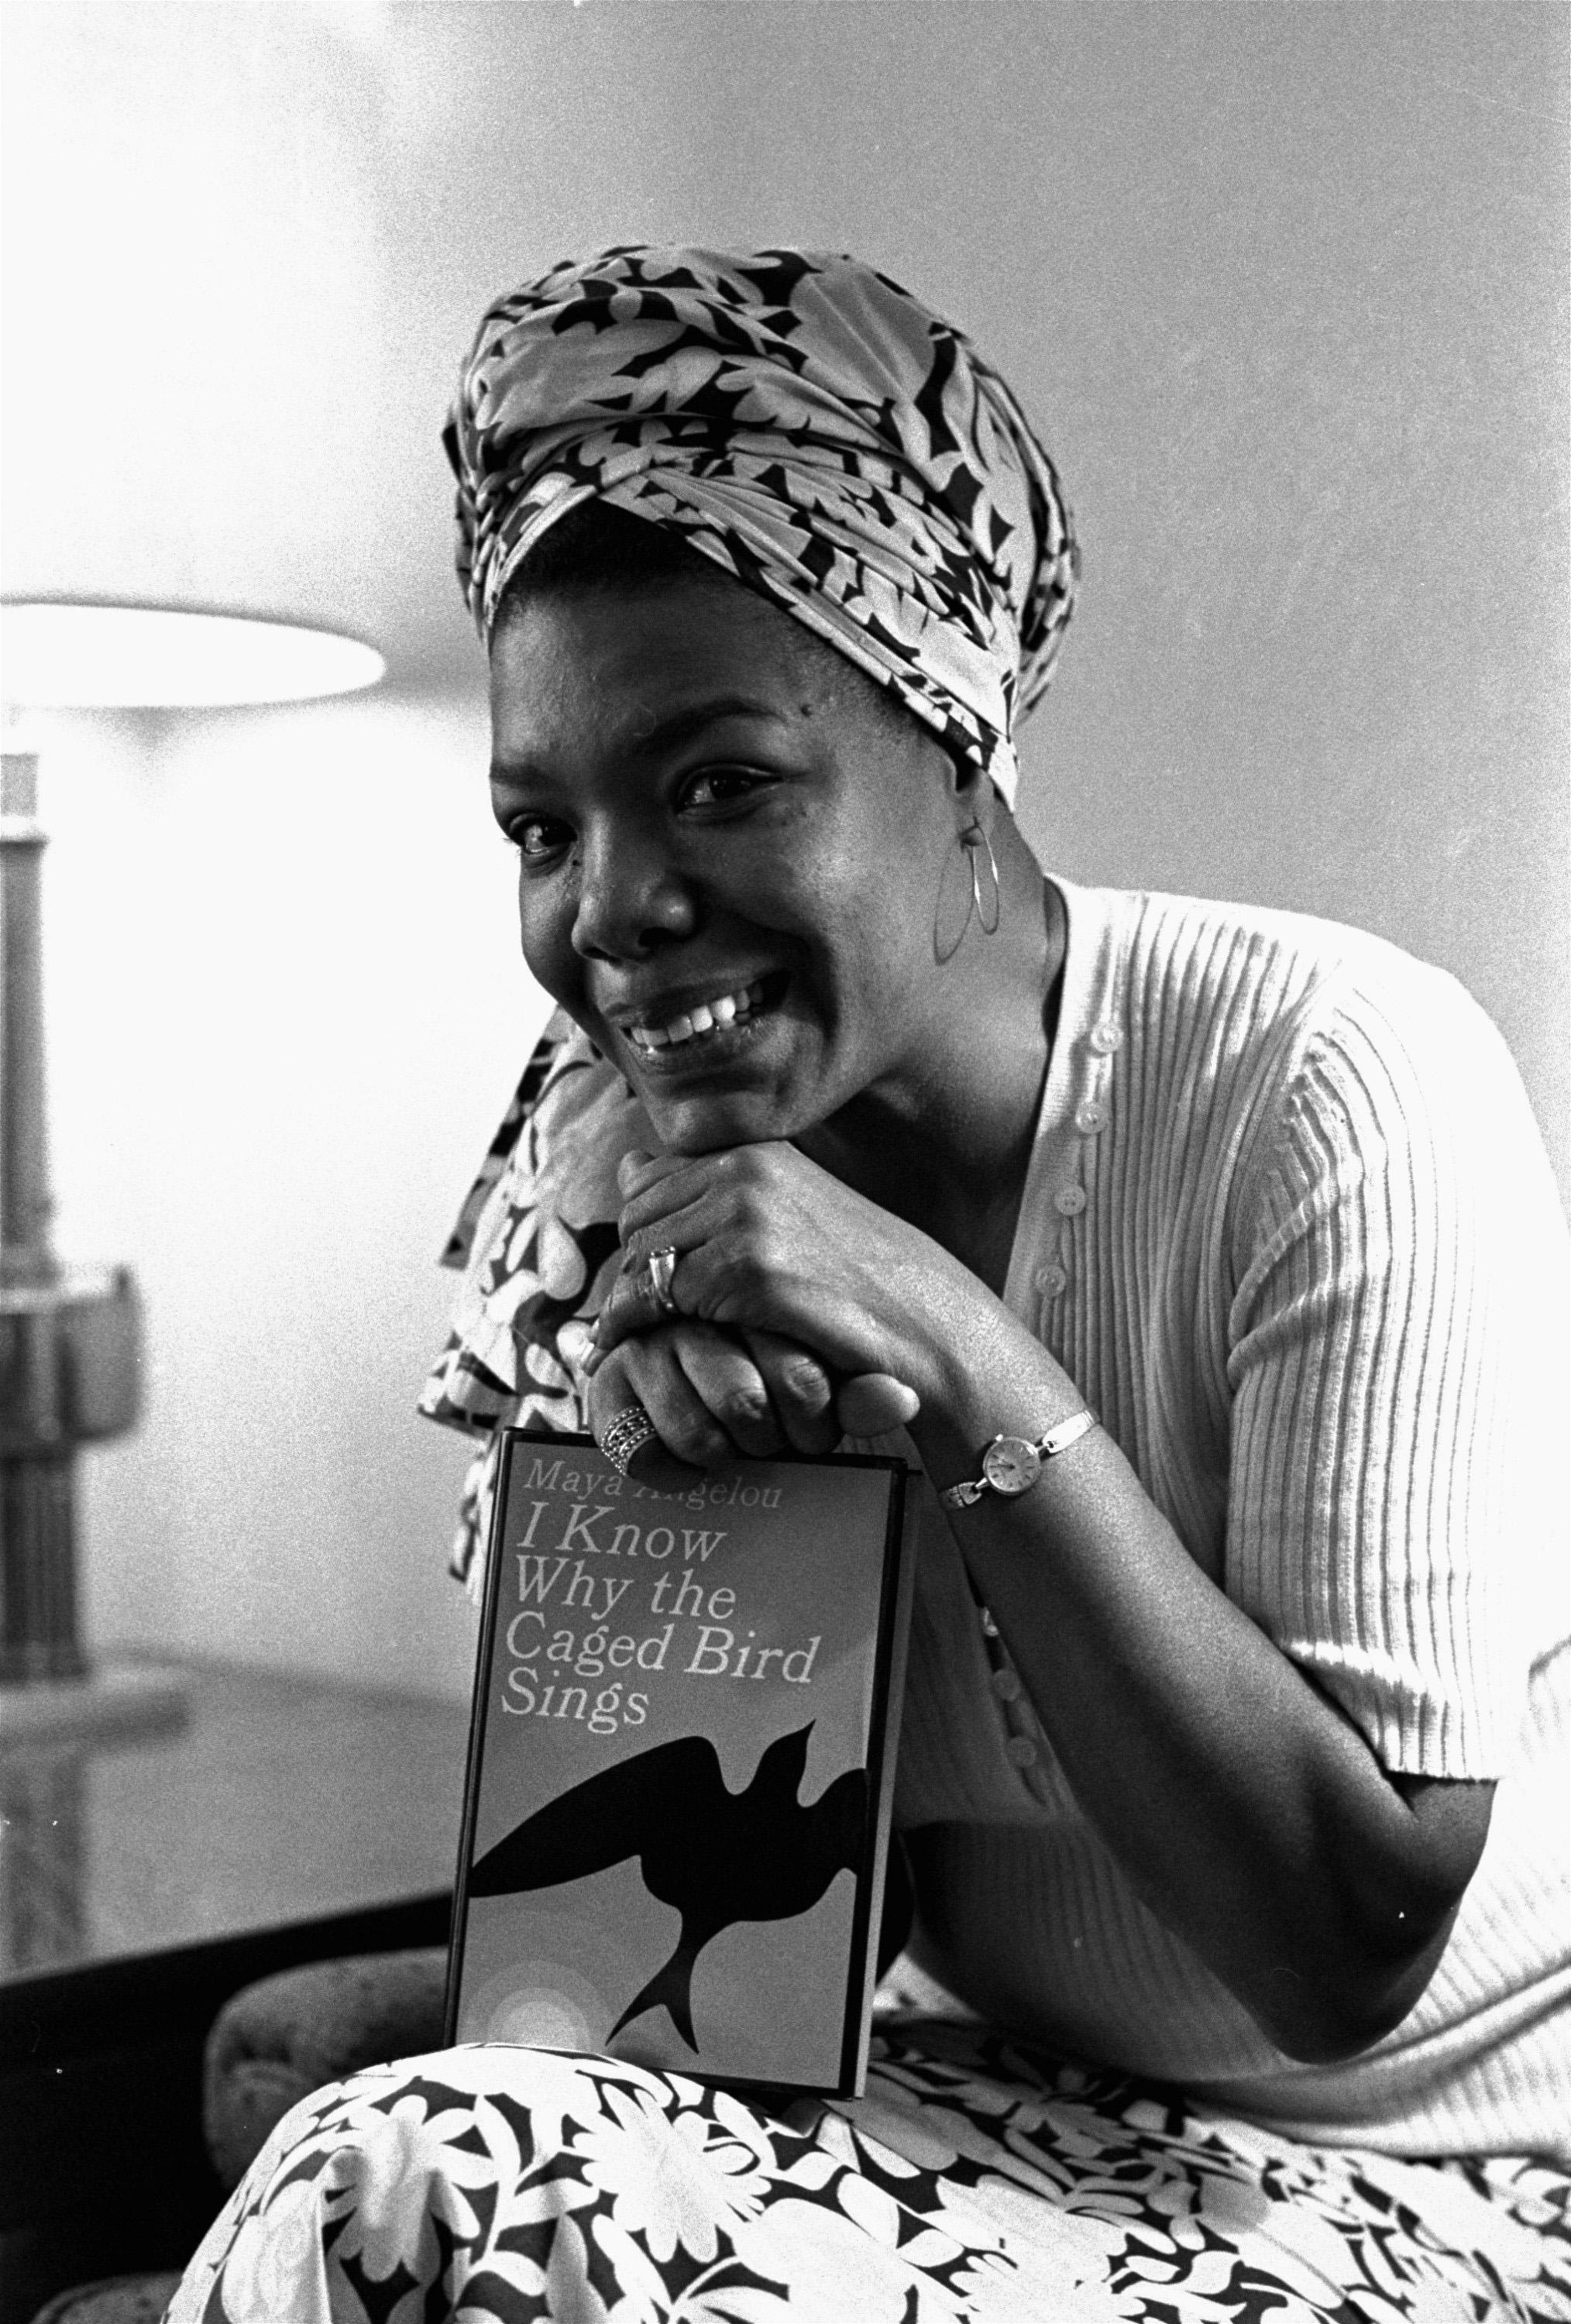 maya angelou ismaya angelou quotes, maya angelou poems, maya angelou phenomenal woman, maya angelou цитаты, maya angelou life, maya angelou the heart of a woman pdf, maya angelou poems best, maya angelou i rise, maya angelou alone, maya angelou pronunciation, maya angelou a brave and startling truth, maya angelou young, maya angelou when you learn teach, maya angelou come and be my baby, maya angelou is, maya angelou we wear the mask, maya angelou misli, maya angelou still i rise, maya angelou phenomenal woman analysis, maya angelou my mission